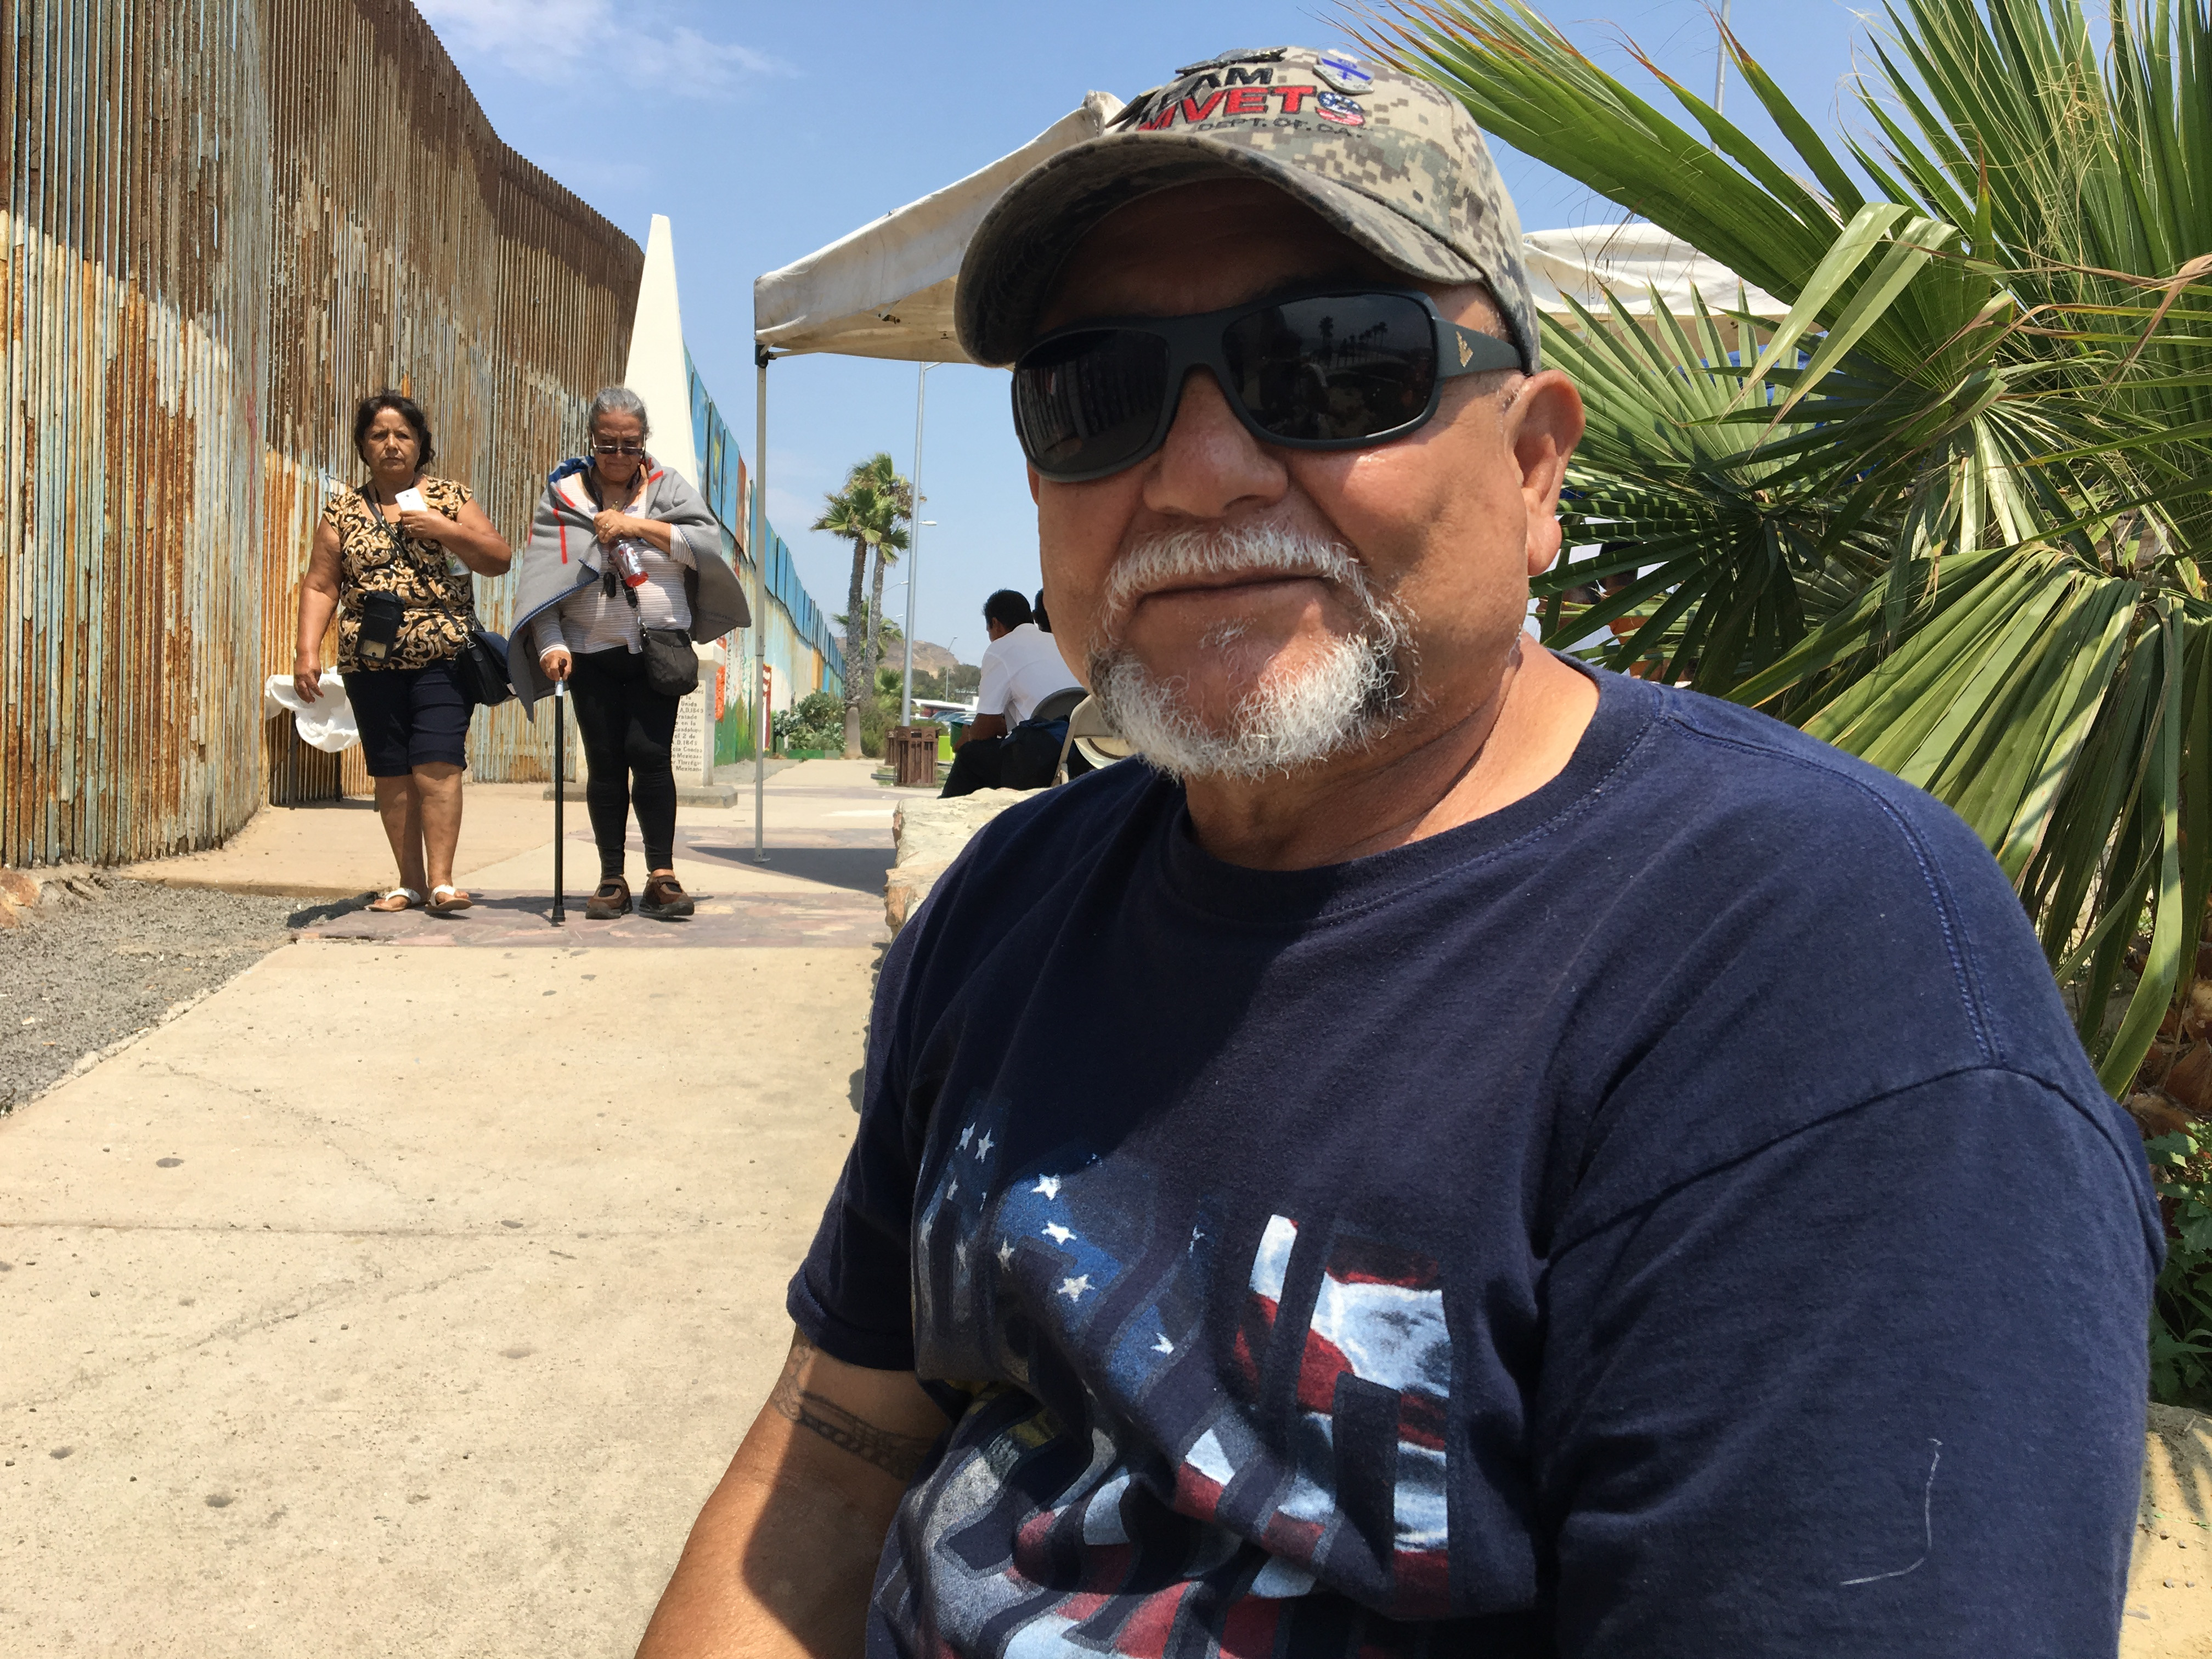 He Served in the U.S. Military, But That Didn't Stop His Deportation